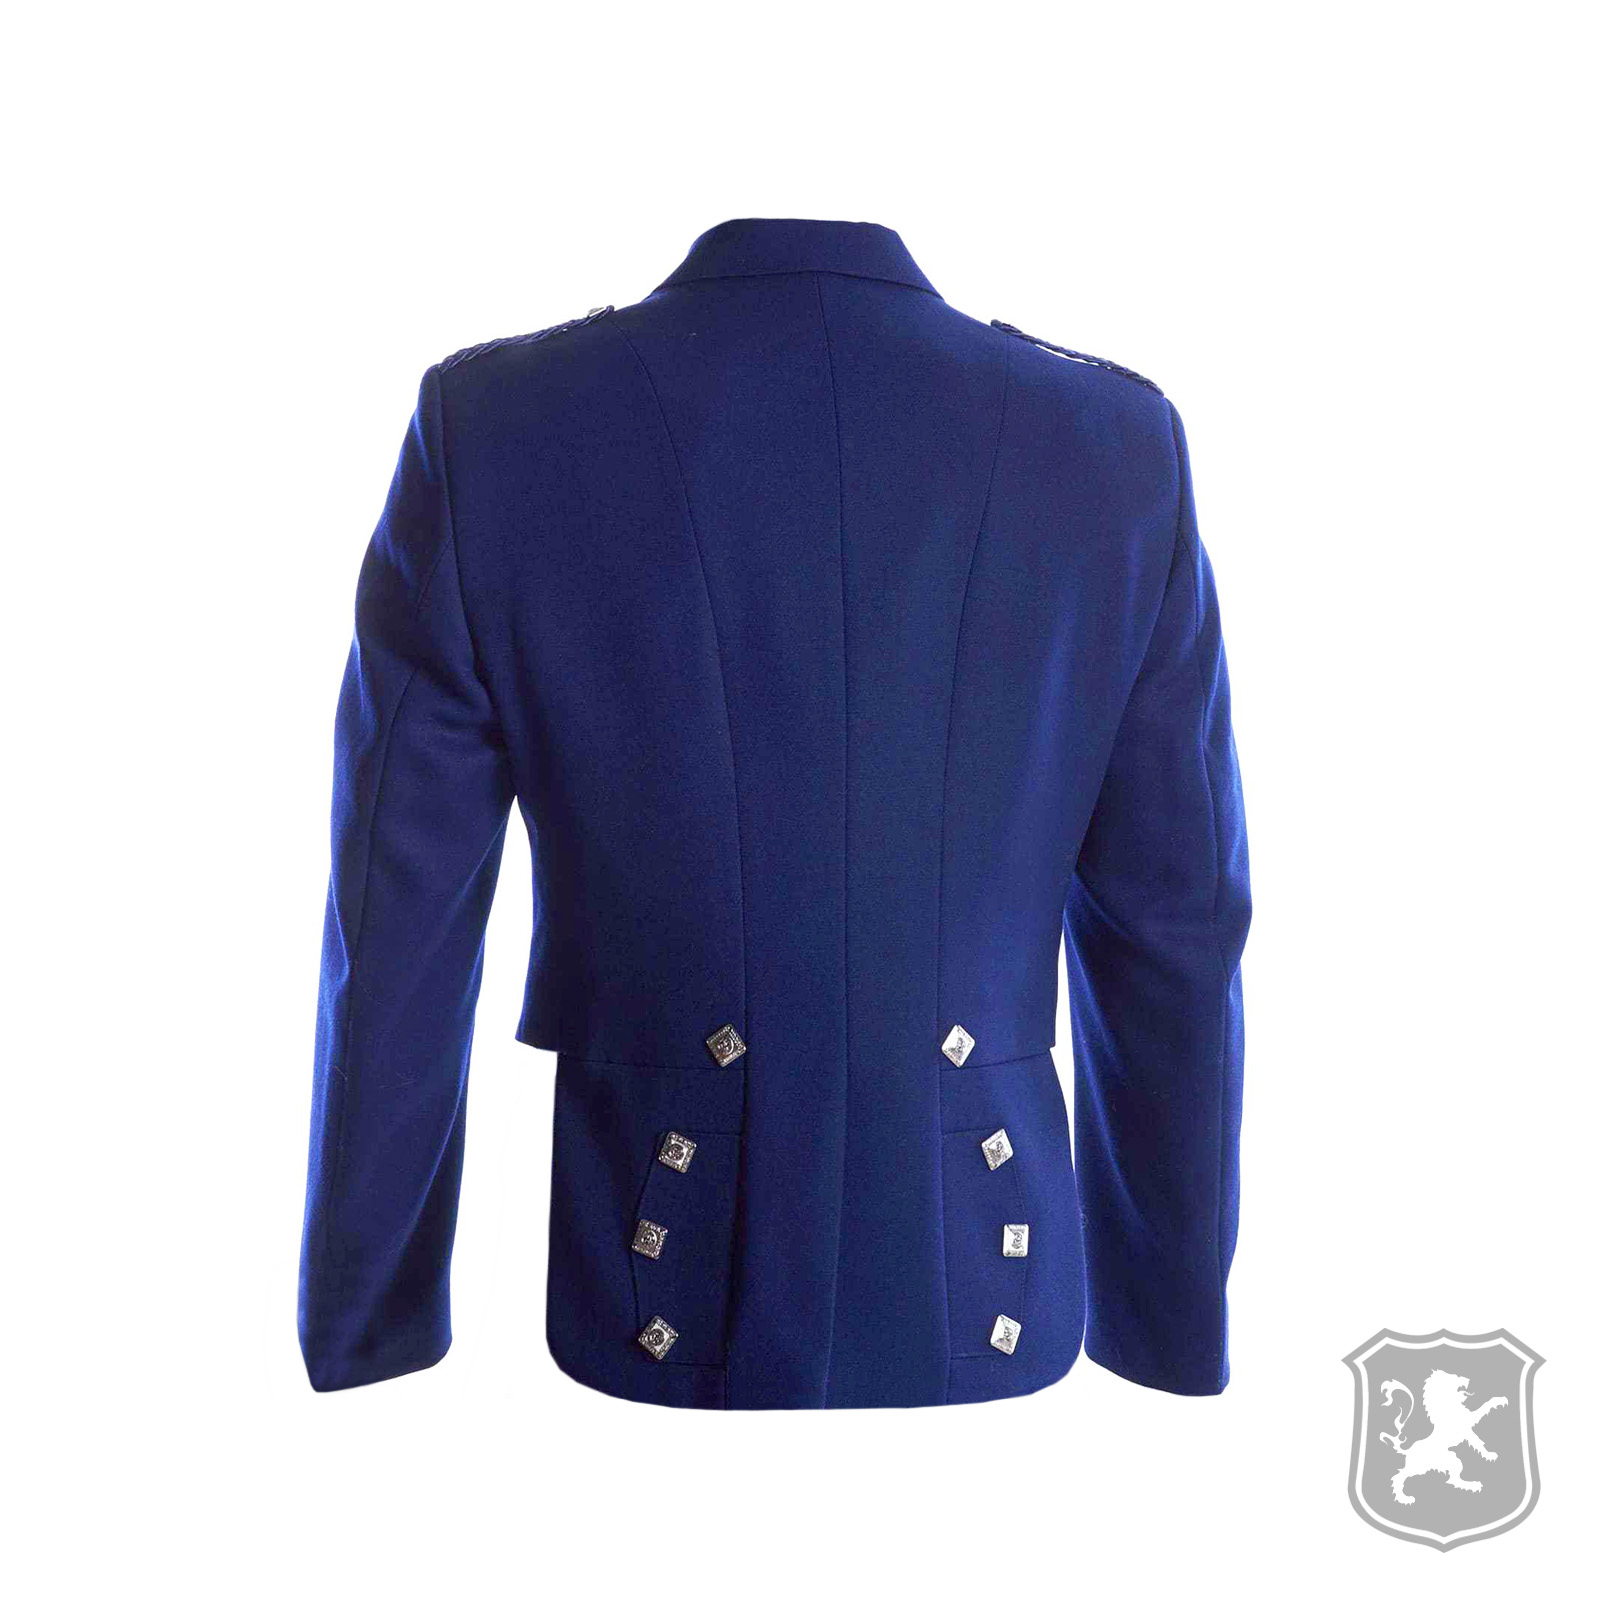 Navy Blue Prince Charlie Jacket With 3 Buttons Vest